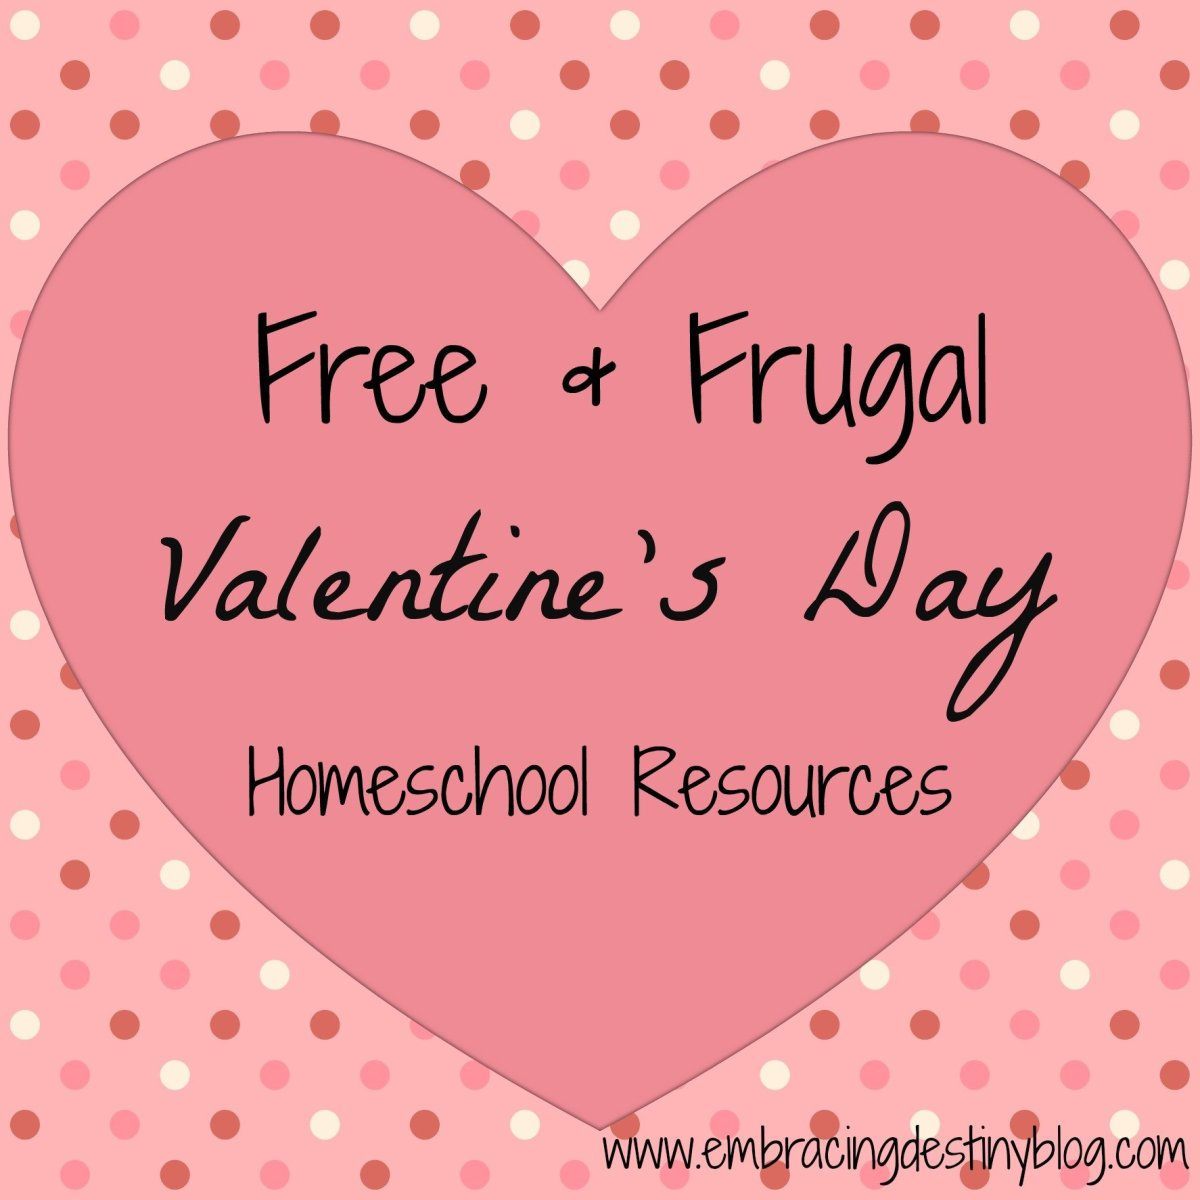 Free & Frugal Homeschool Resources for Valentine's Day